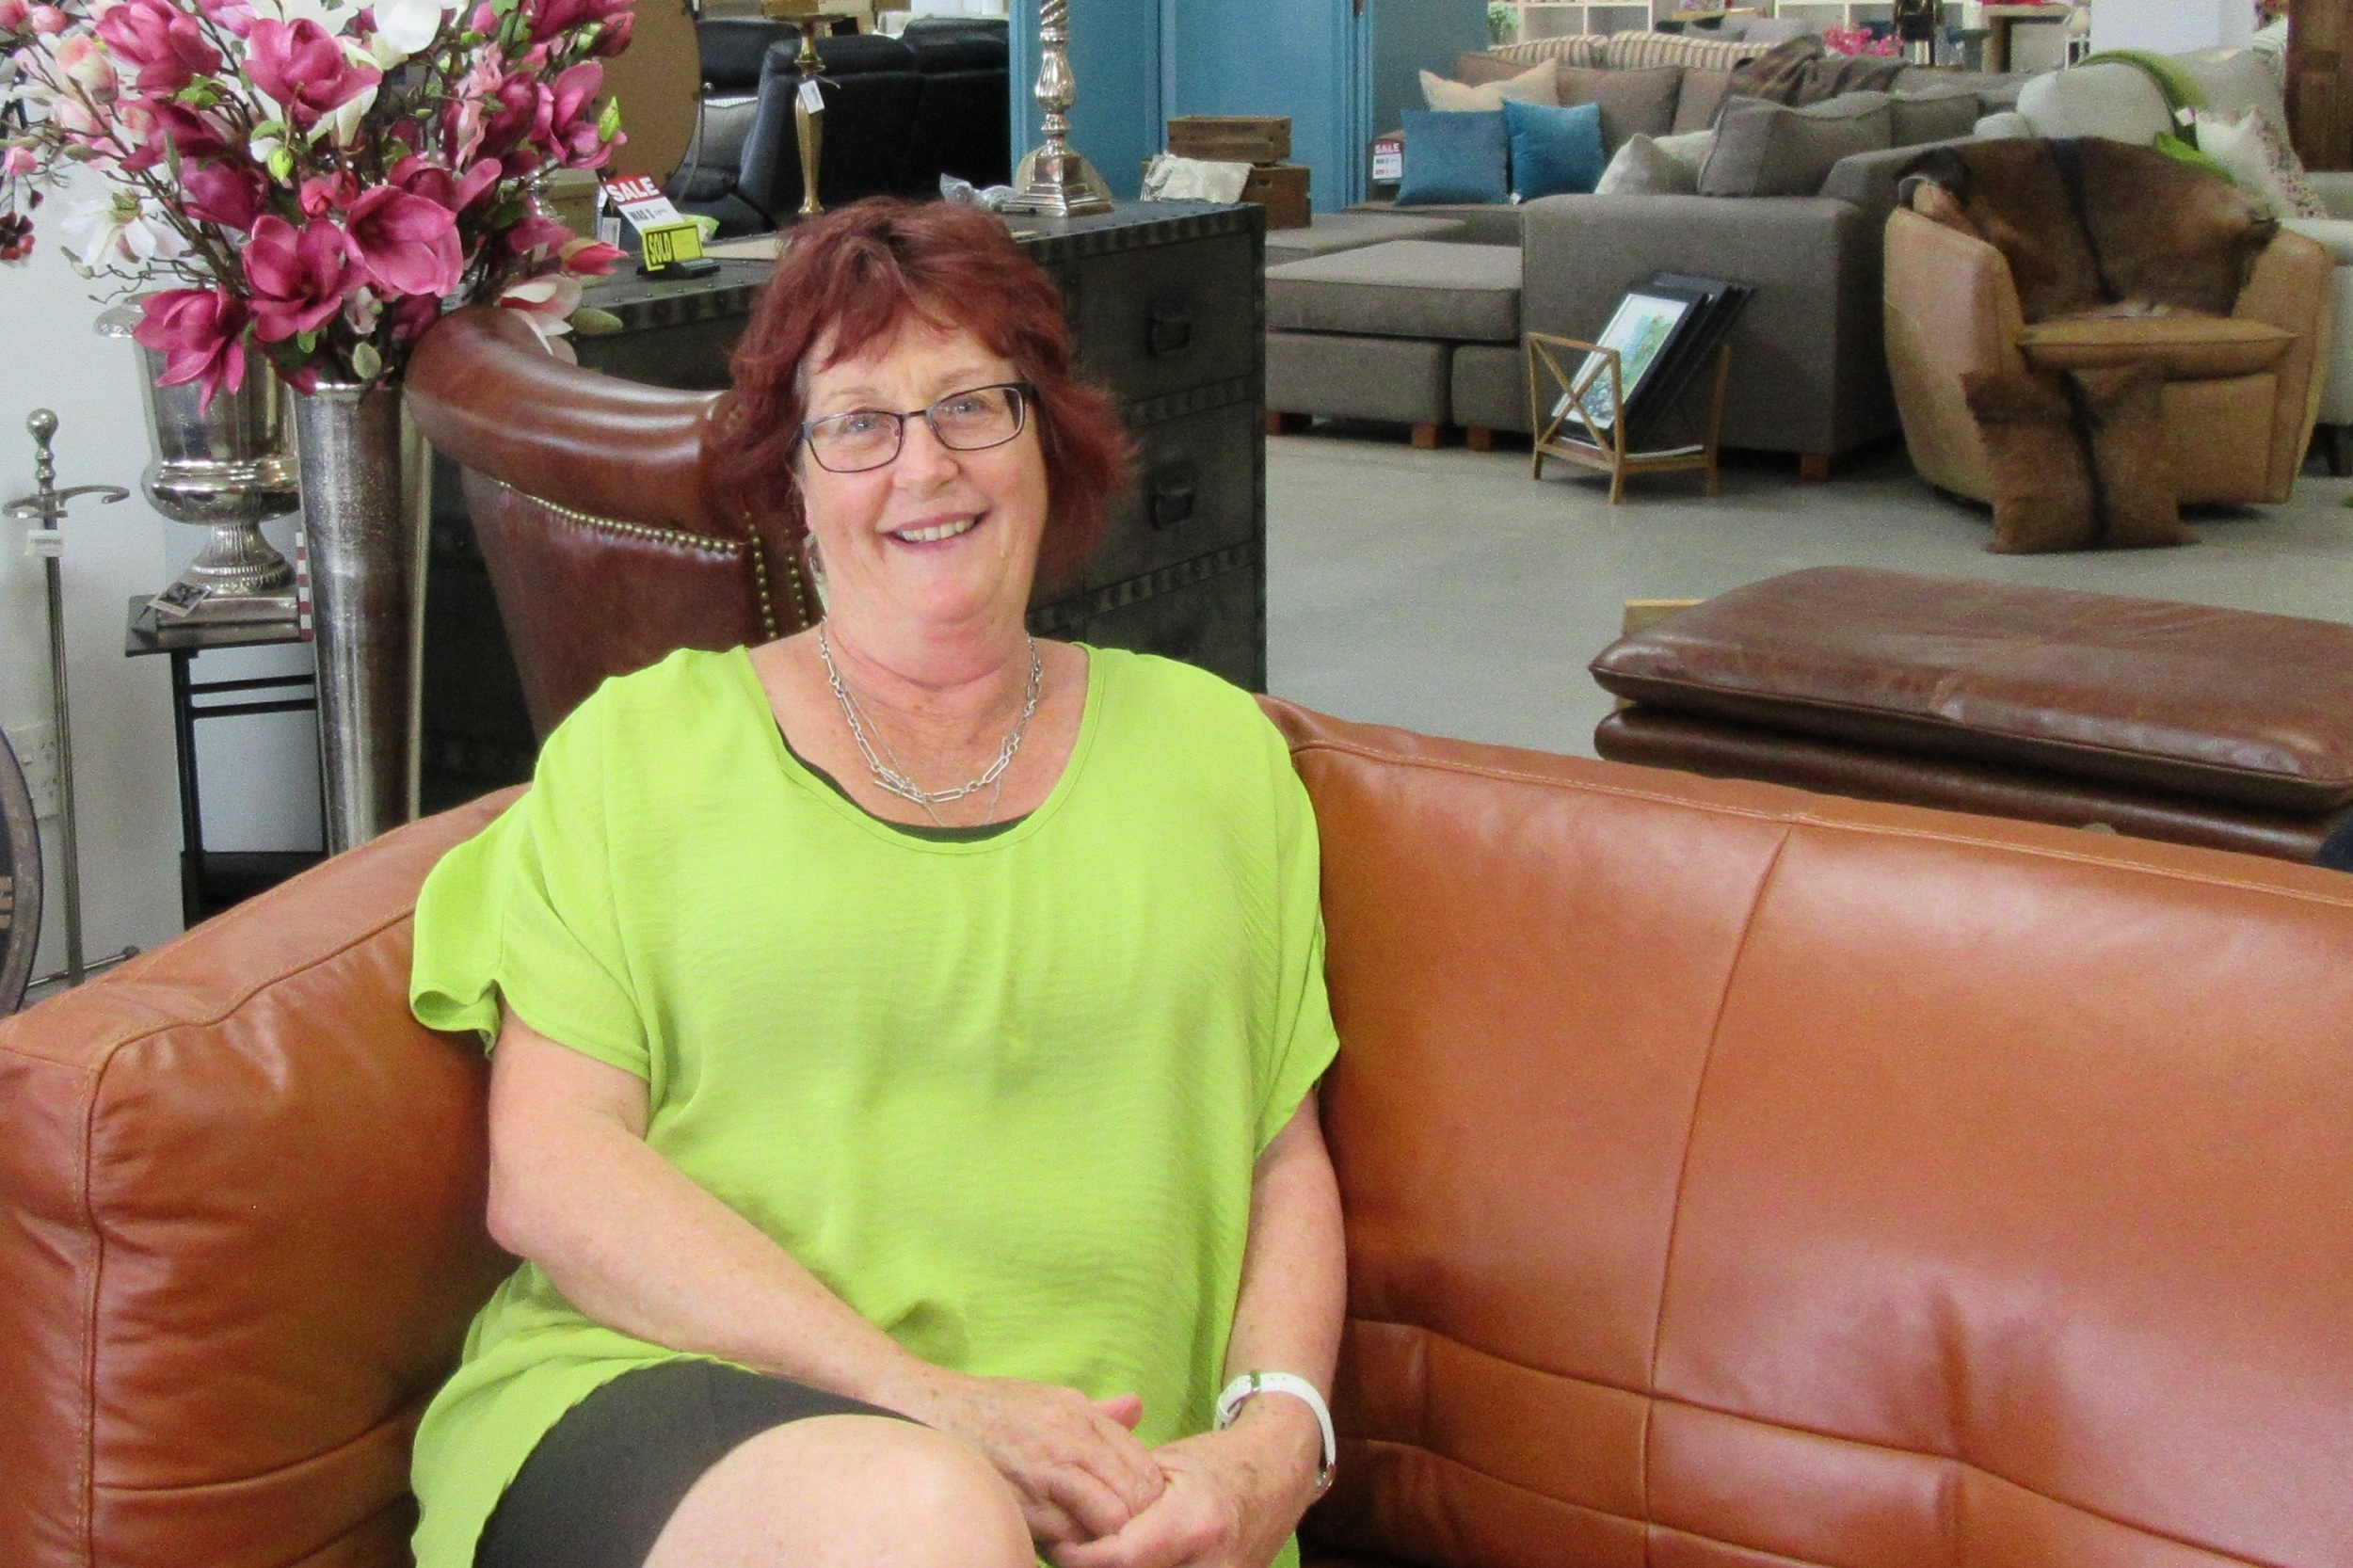 Kay Hodges - With all our new eclectic designer pieces coming through, I am eager to help you make great decisions on the look for your home.